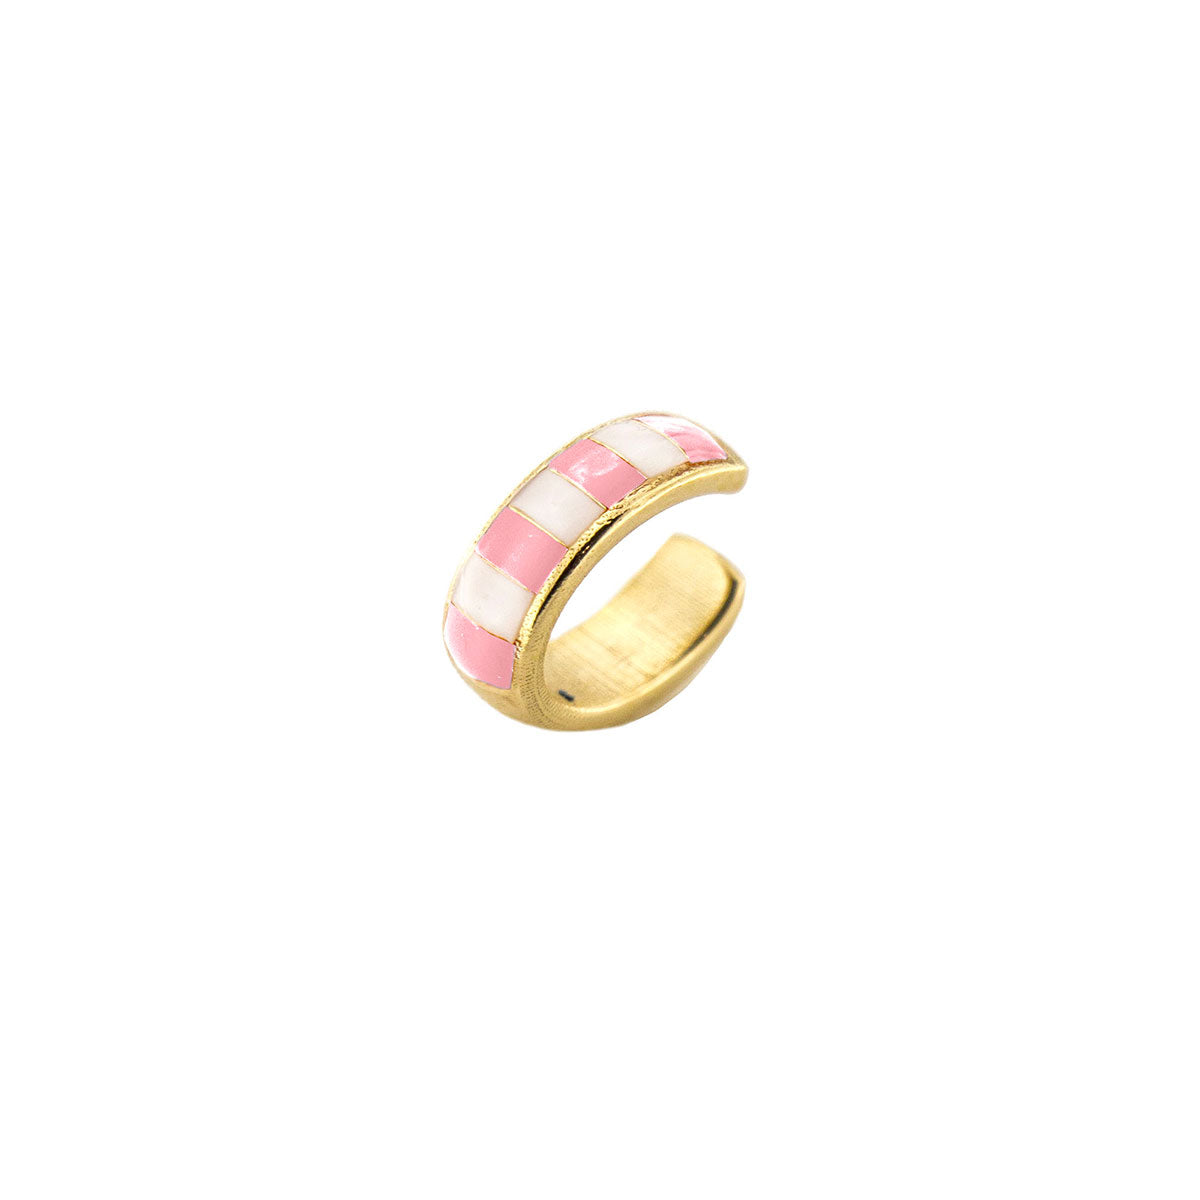 Earcuff enameled with pink stripes